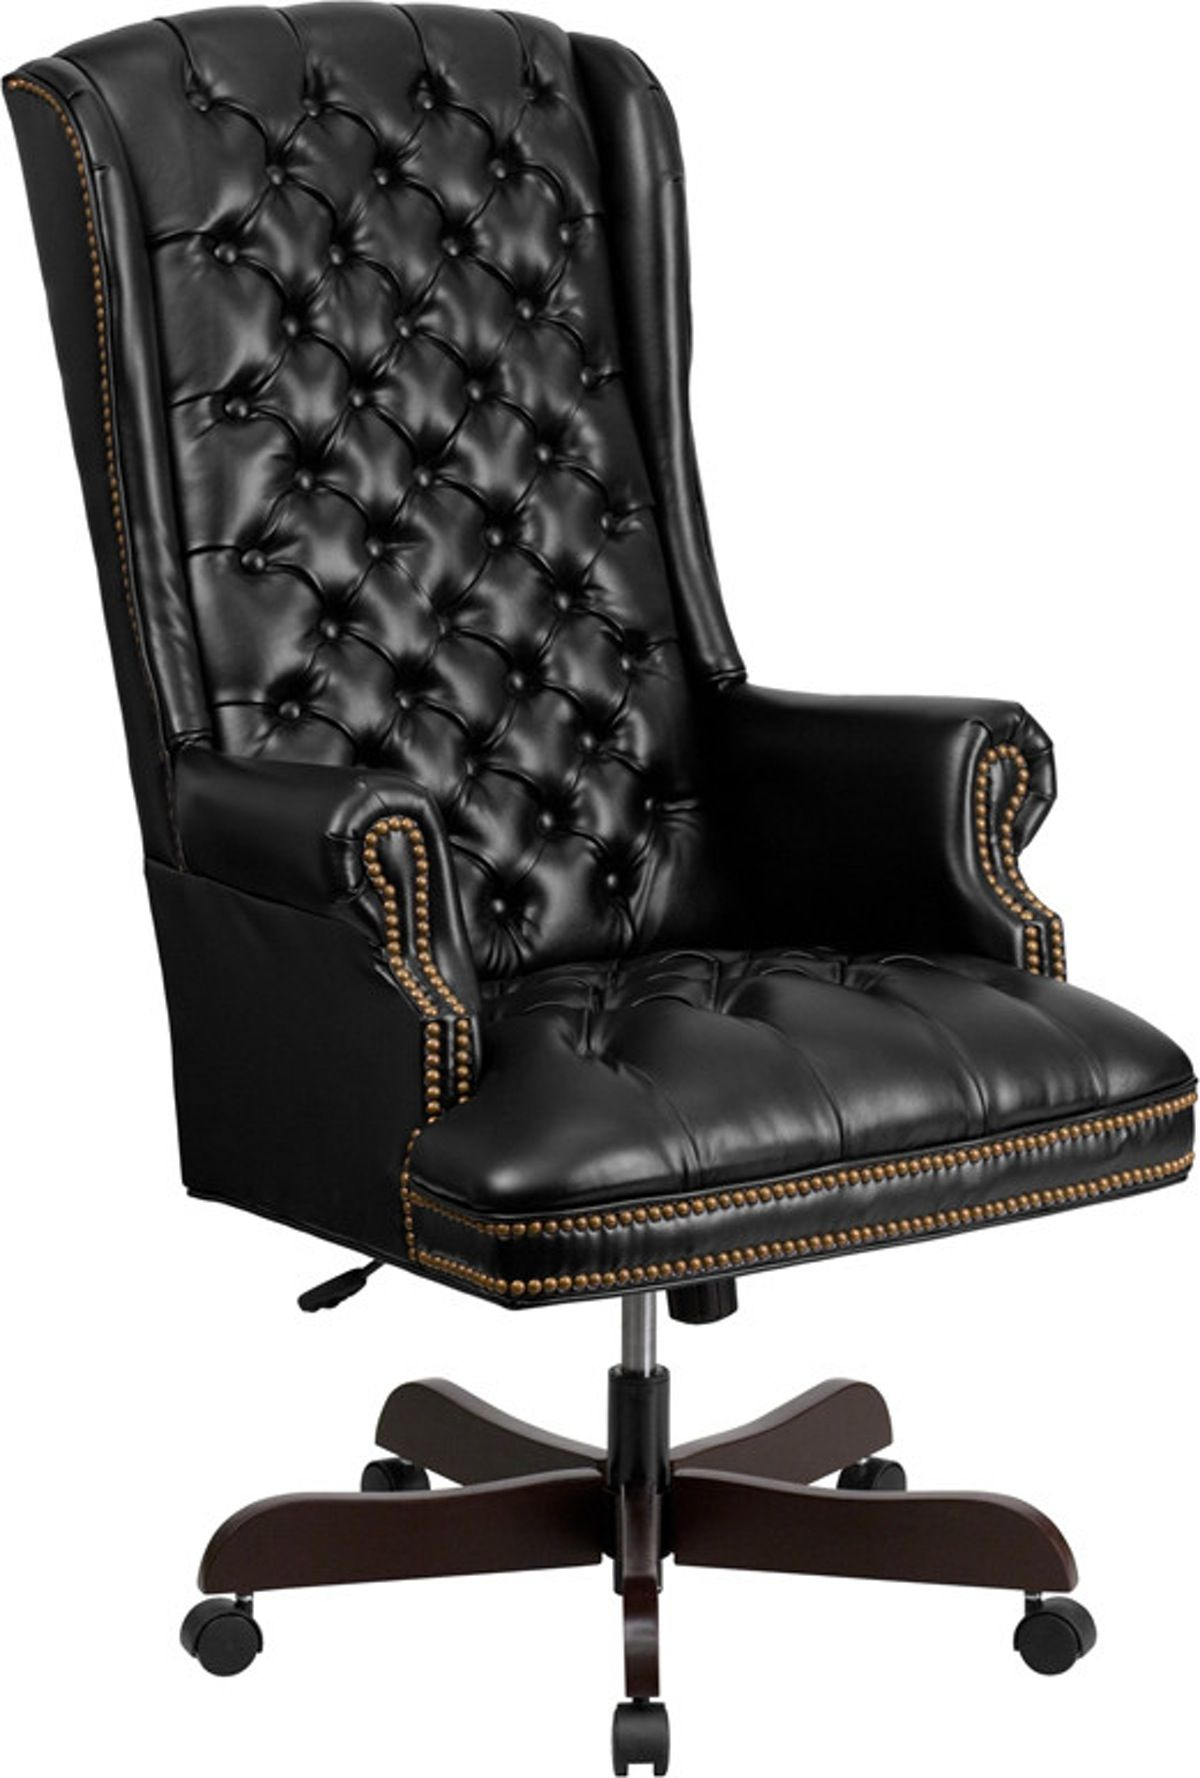 black leather desk chairs high baby bunting flash furniture back traditional tufted executive swivel office chair